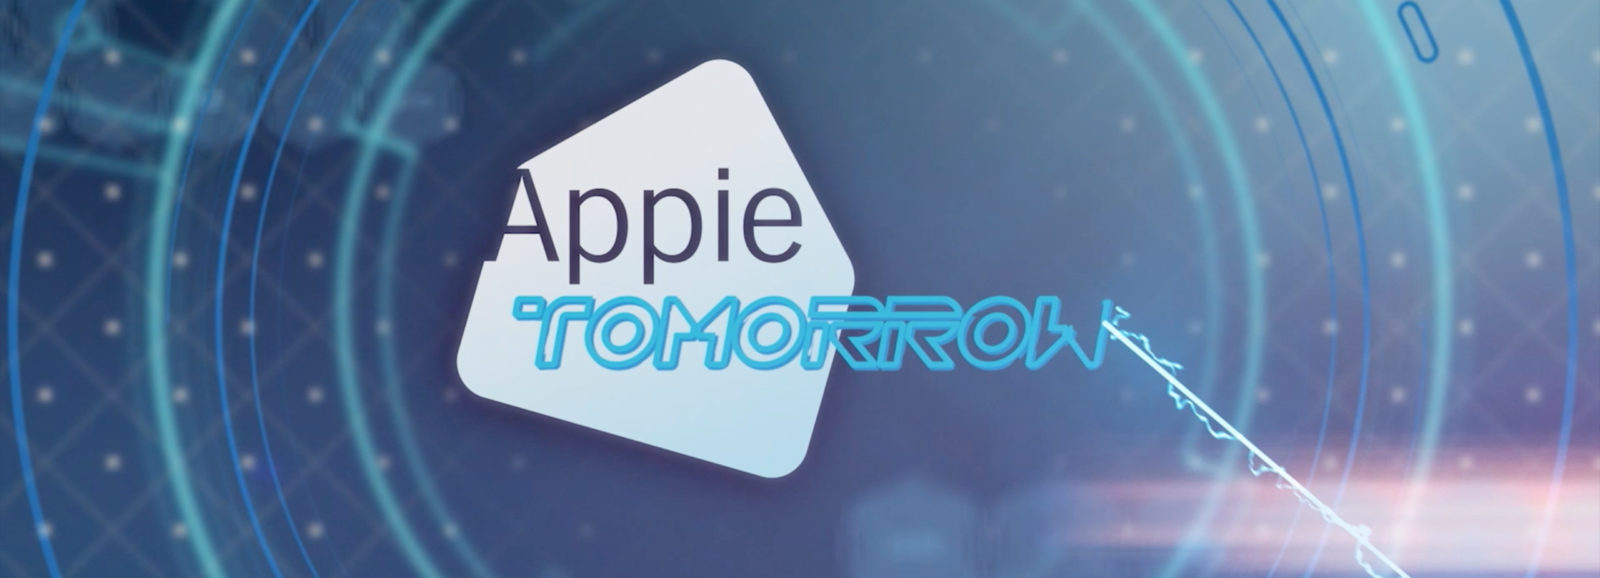 Appie Tomorrow